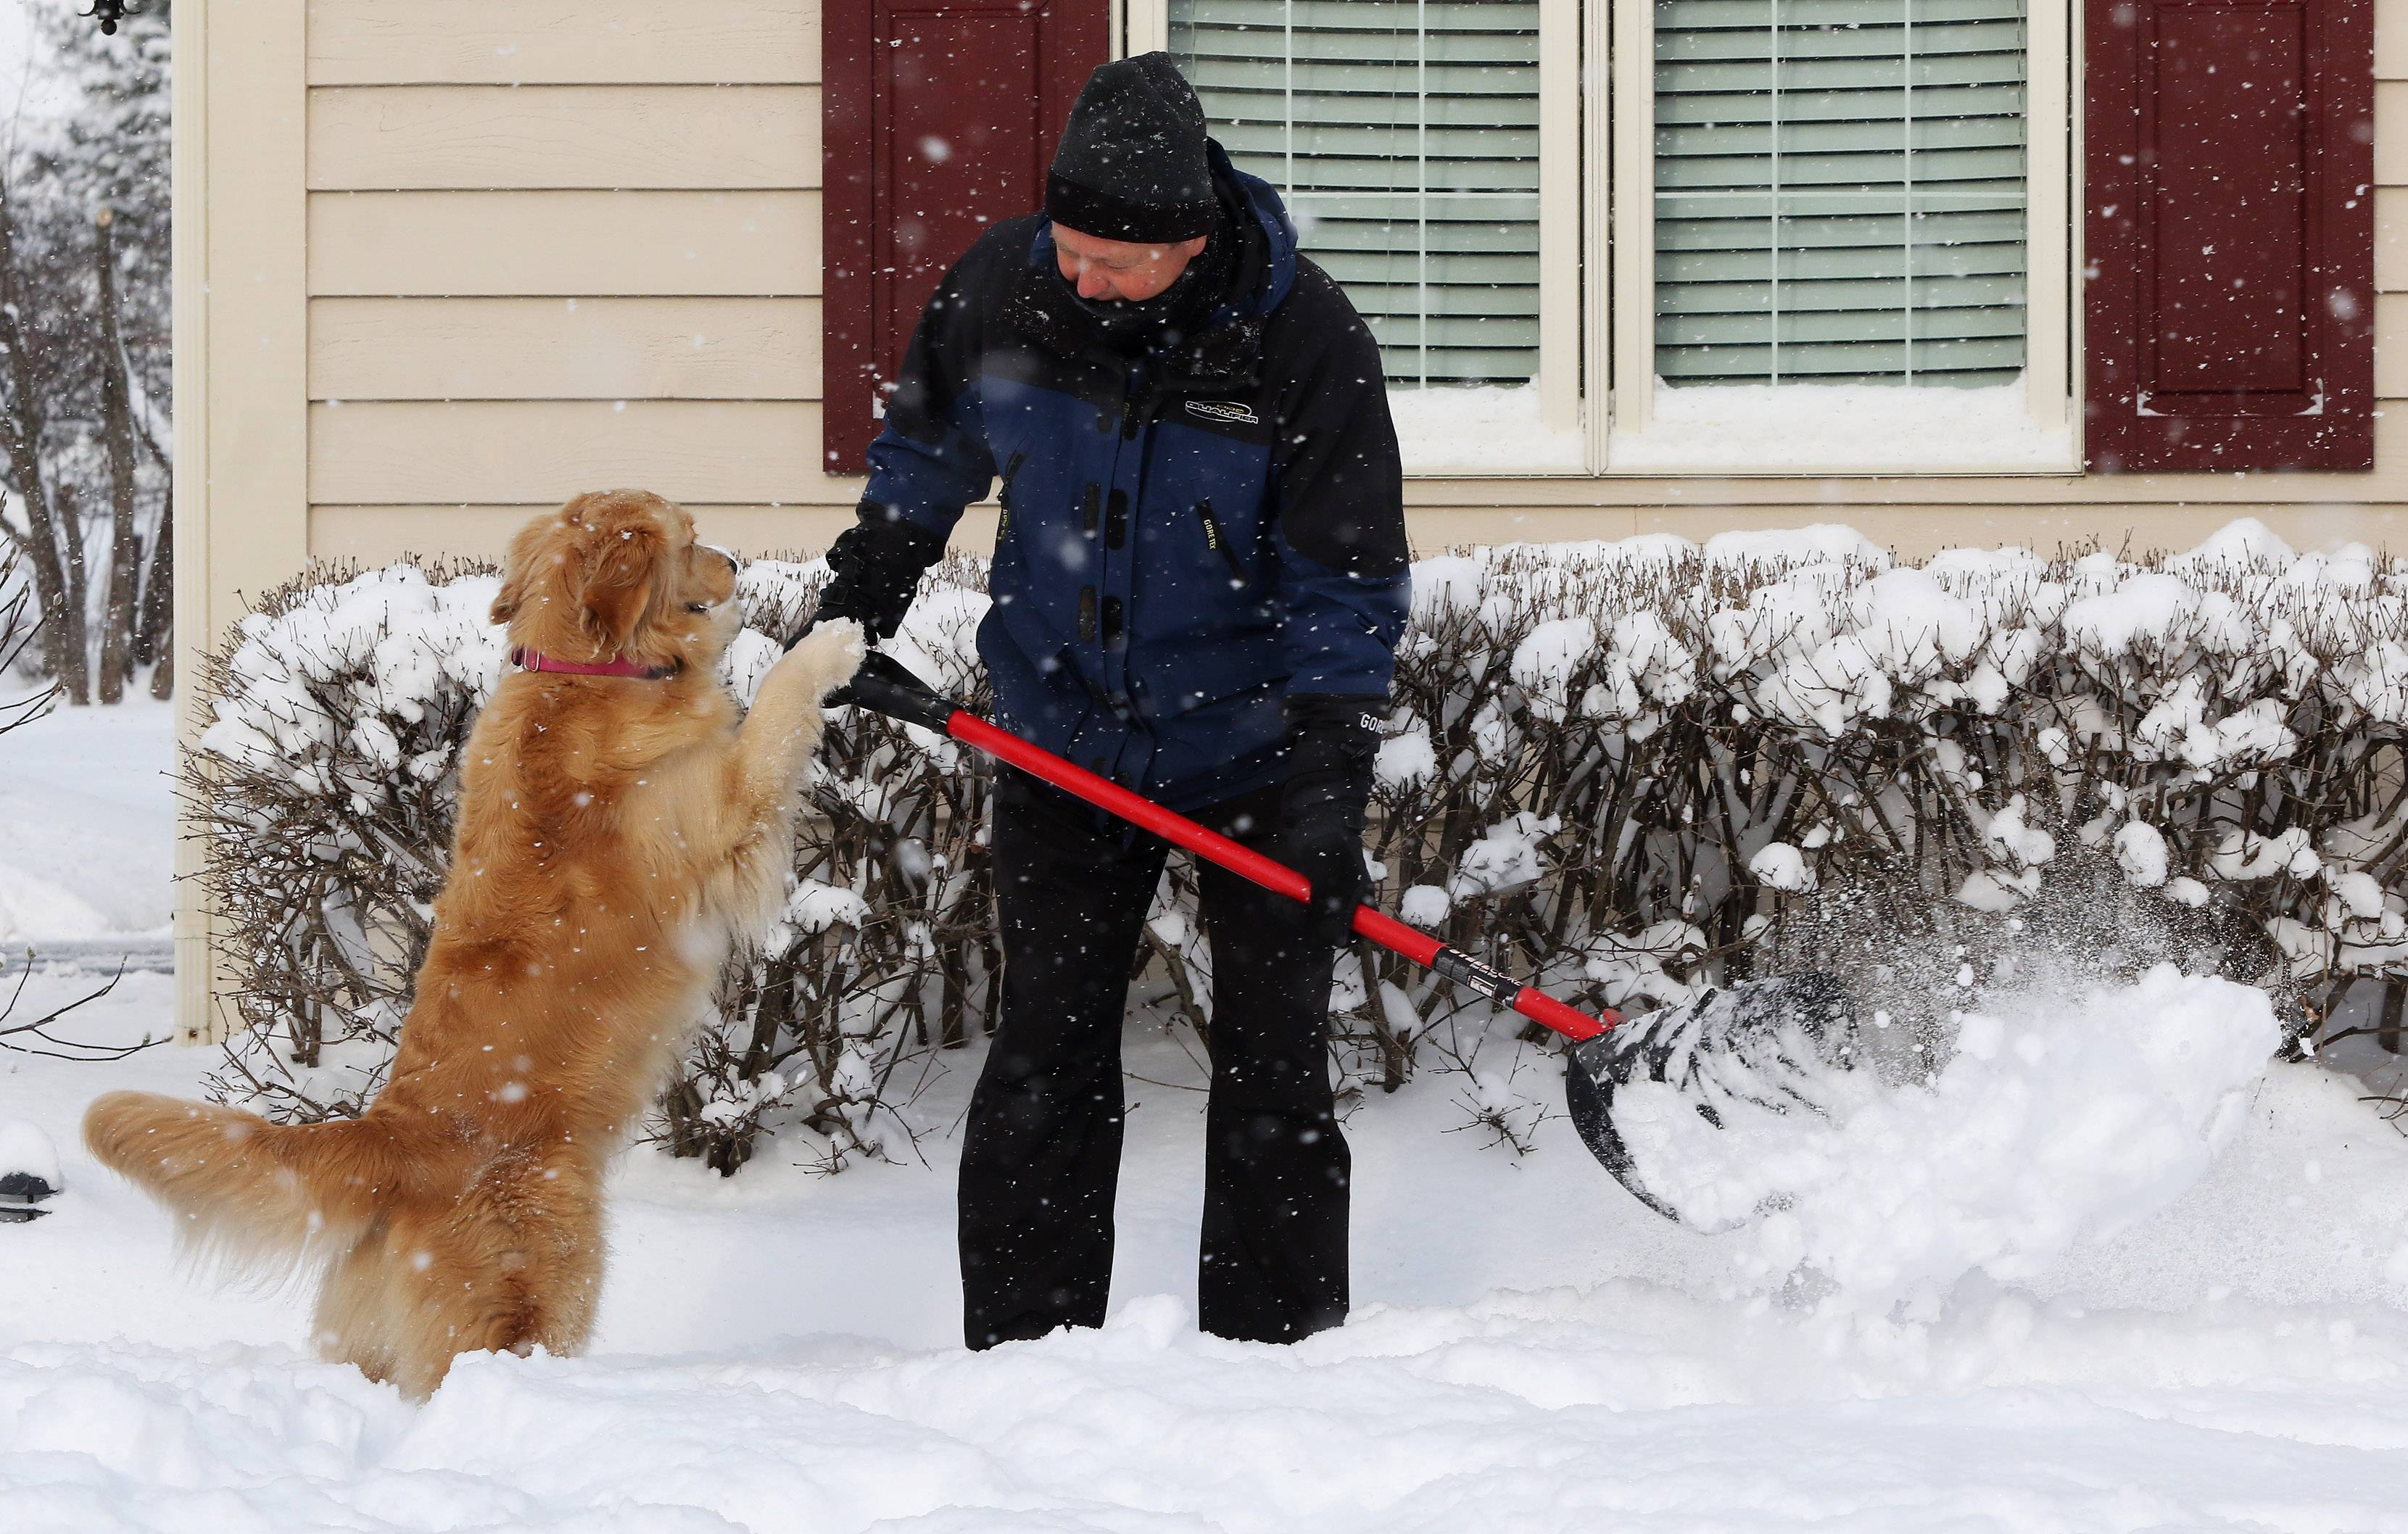 Gurnee resident Tom Westberg gets help shoveling from his golden retriever, Lilly, on Tuesday after heavy snow fell overnight. The lake effect snow created traffic nightmares in Lake County in the morning.